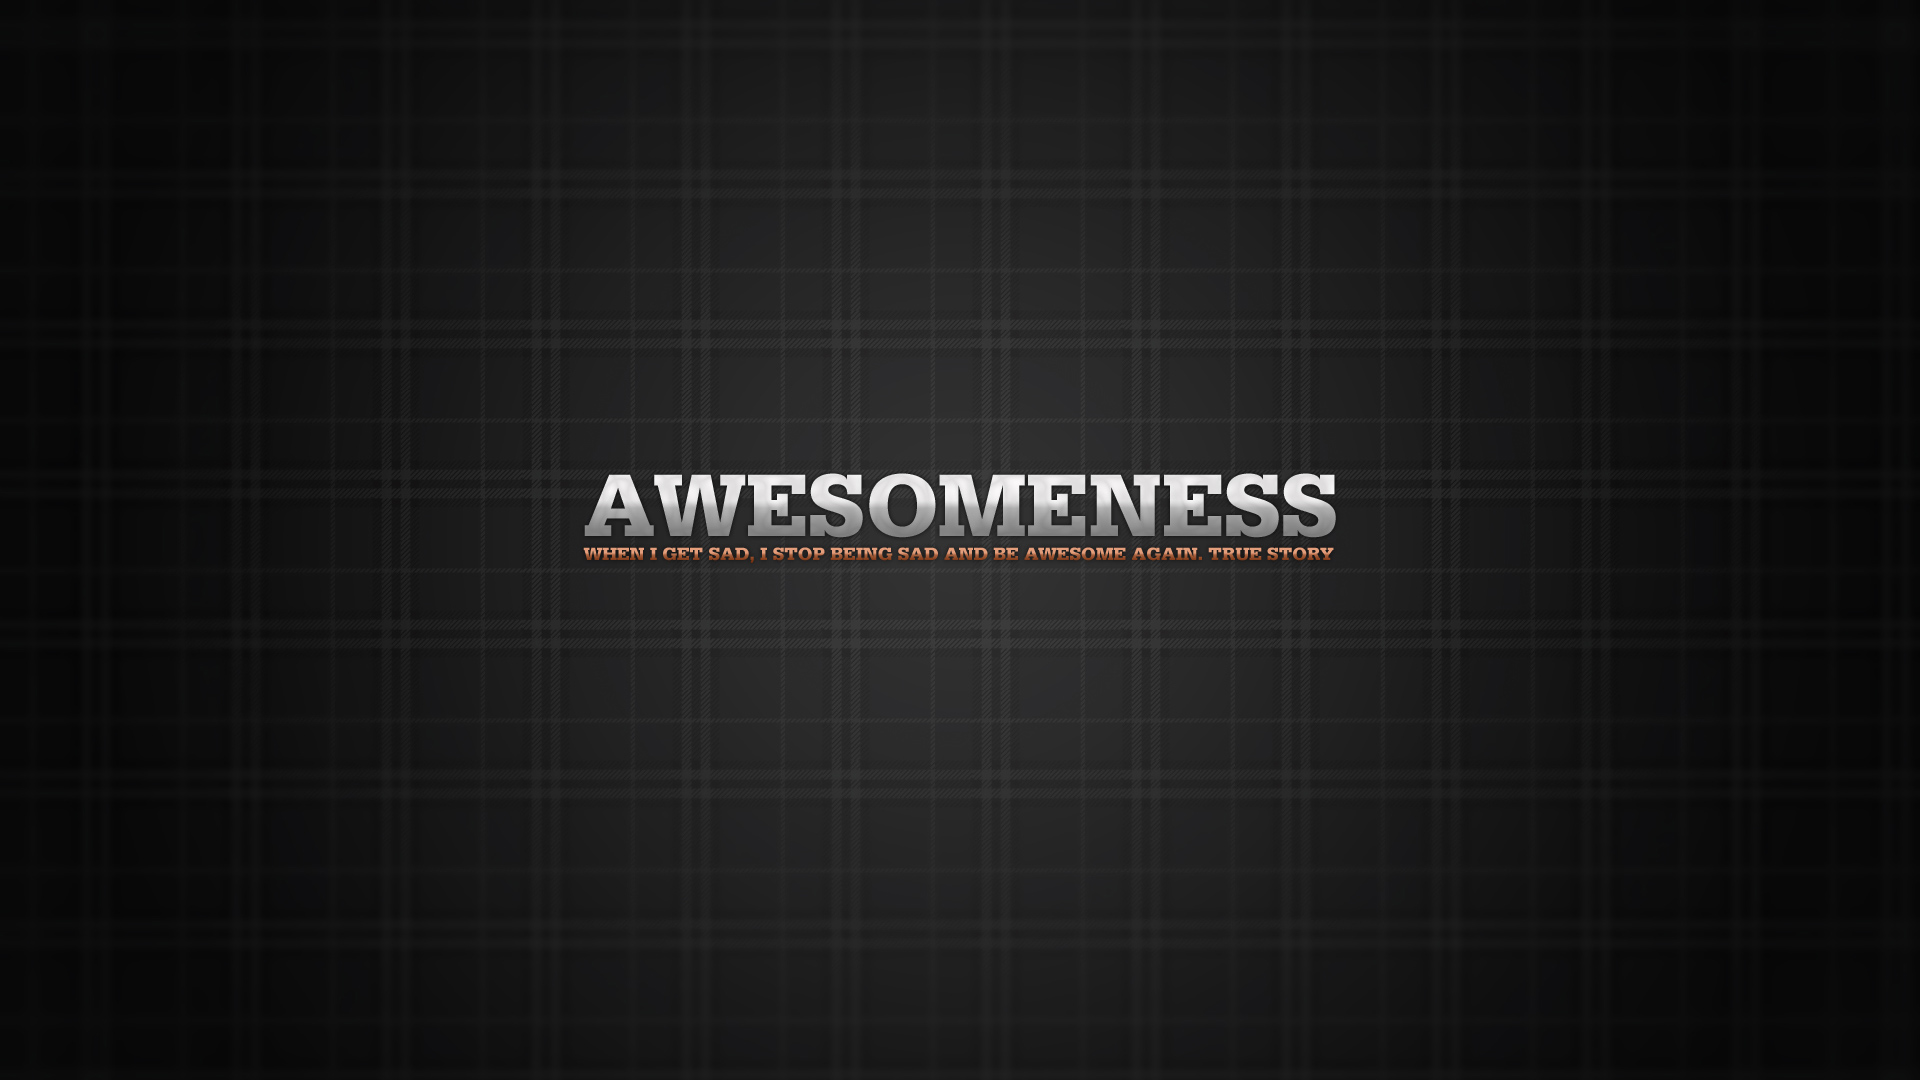 Awesomeness Full HD 1080p wallpaper funny quote true story 1920x1080